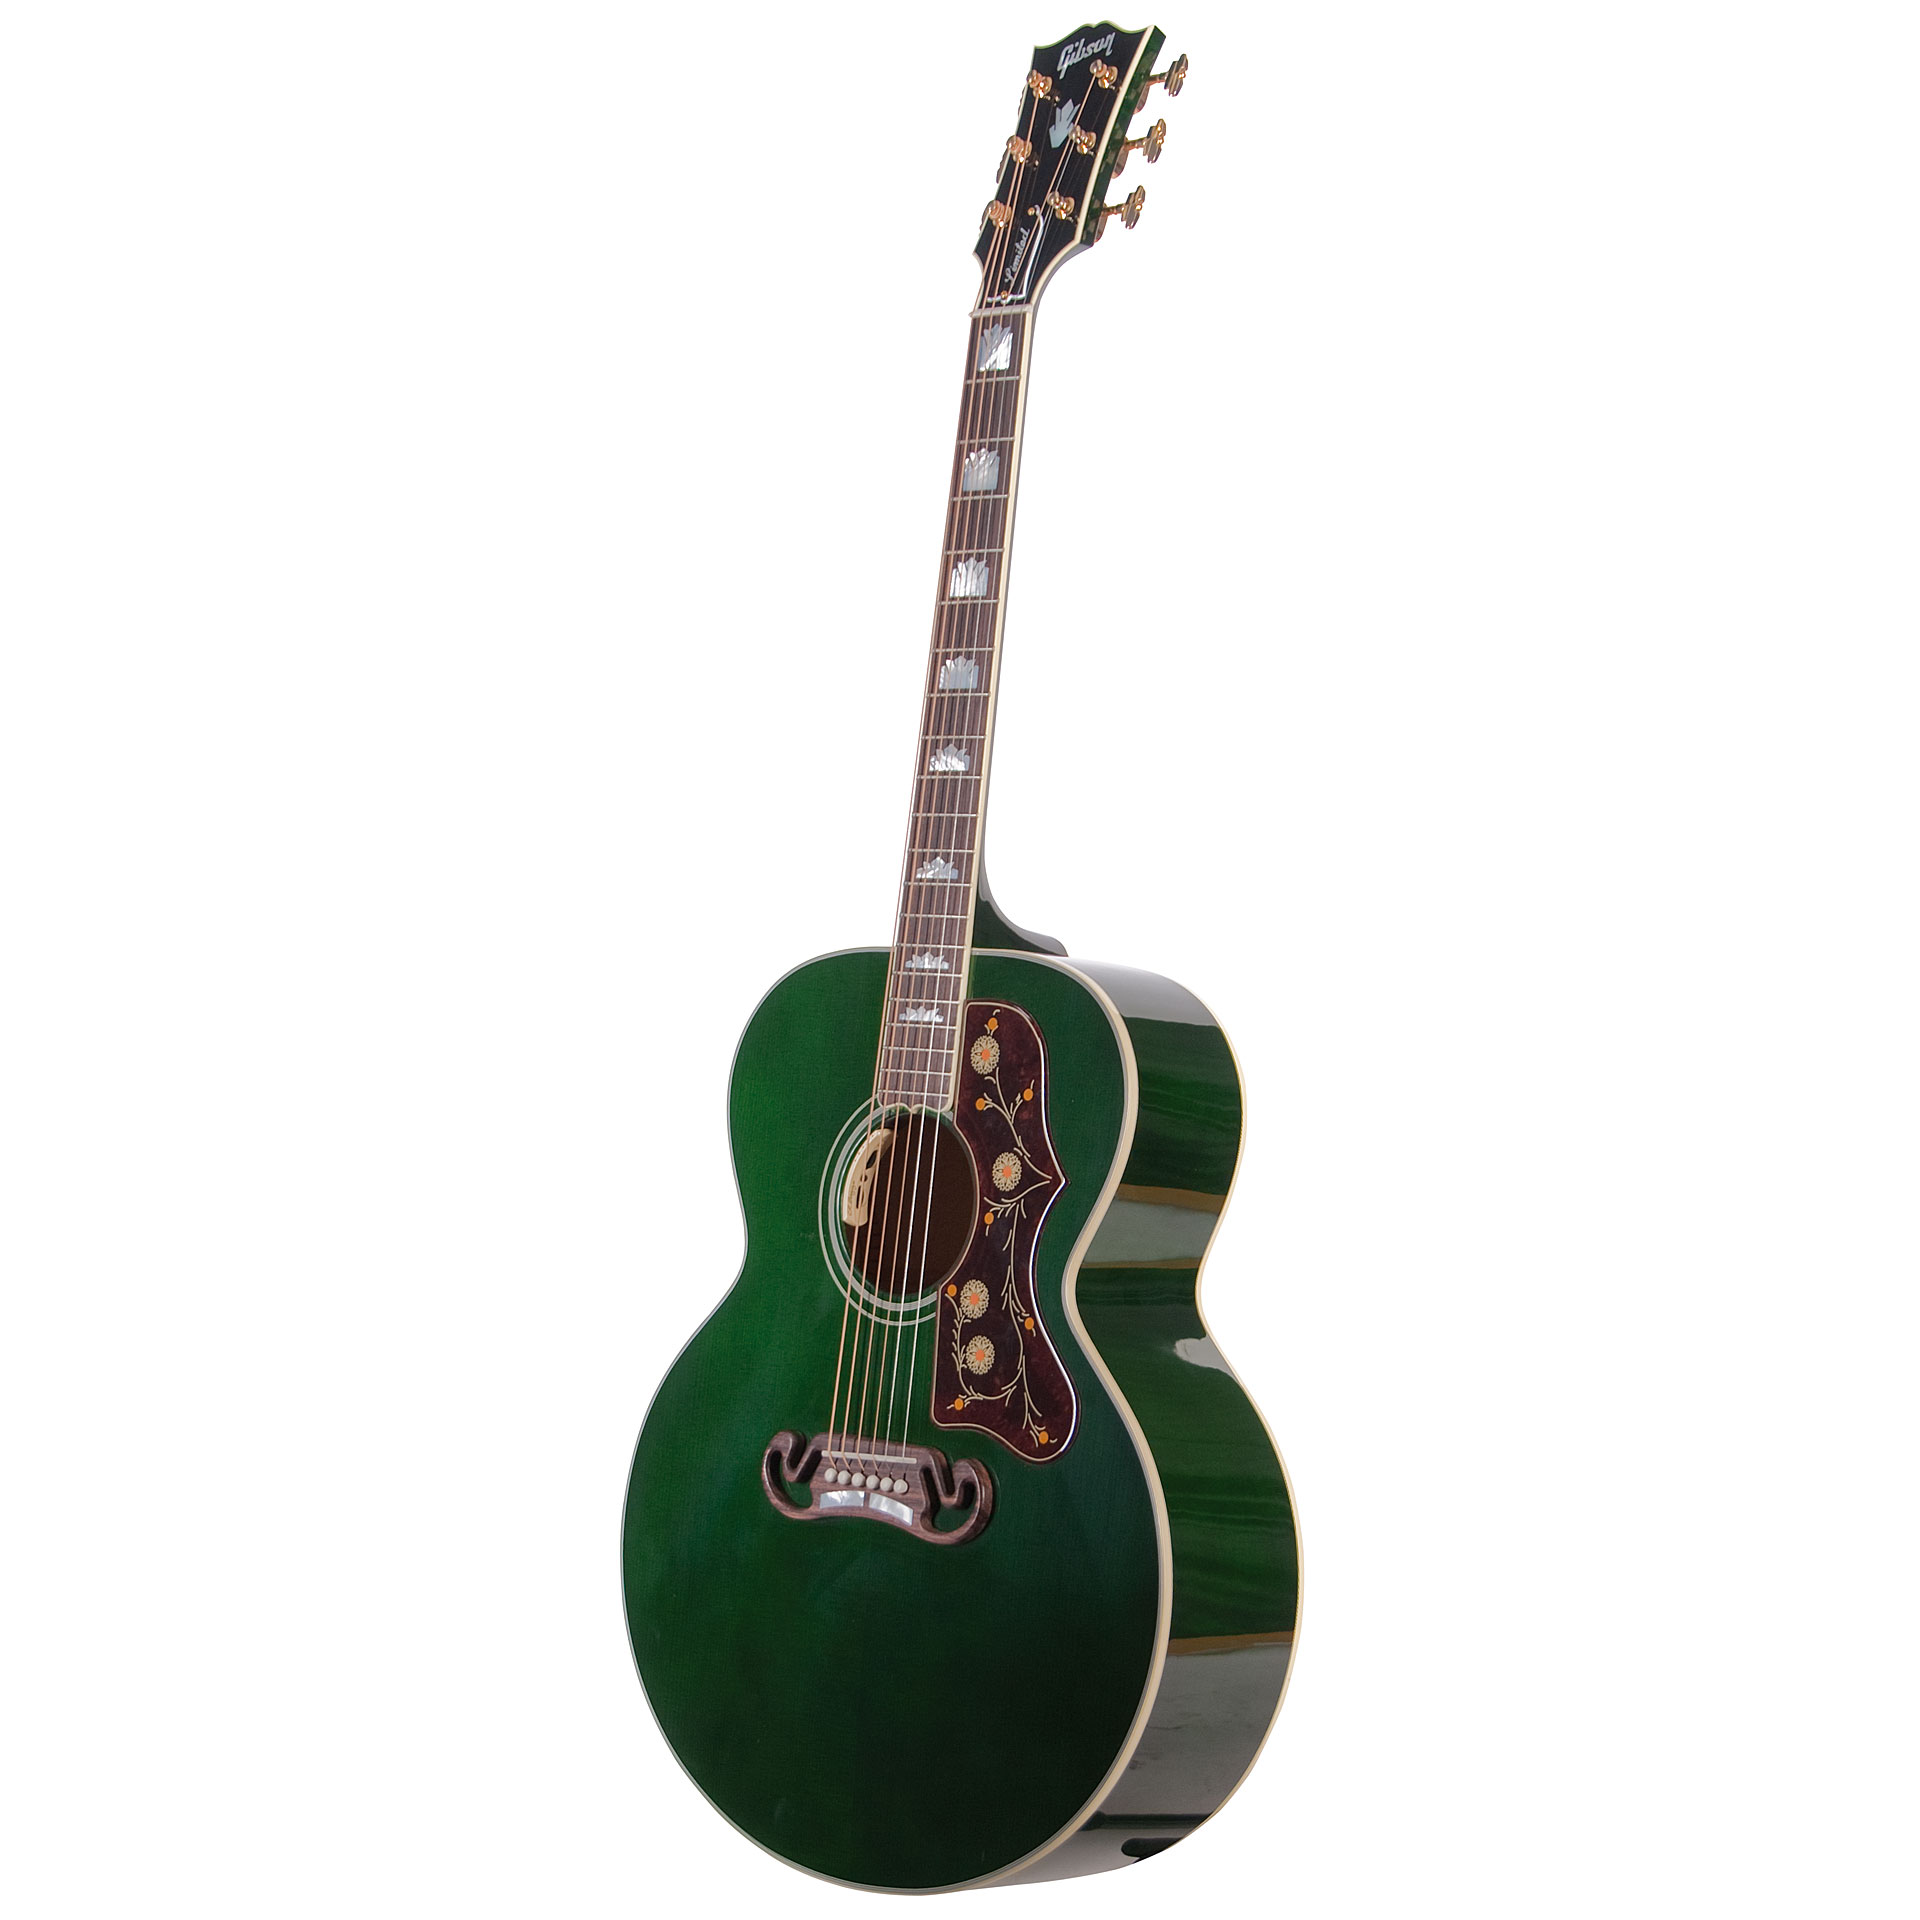 Gibson Sj 200 Emerald Green Limited Edition The Acoustic Guitar Forum